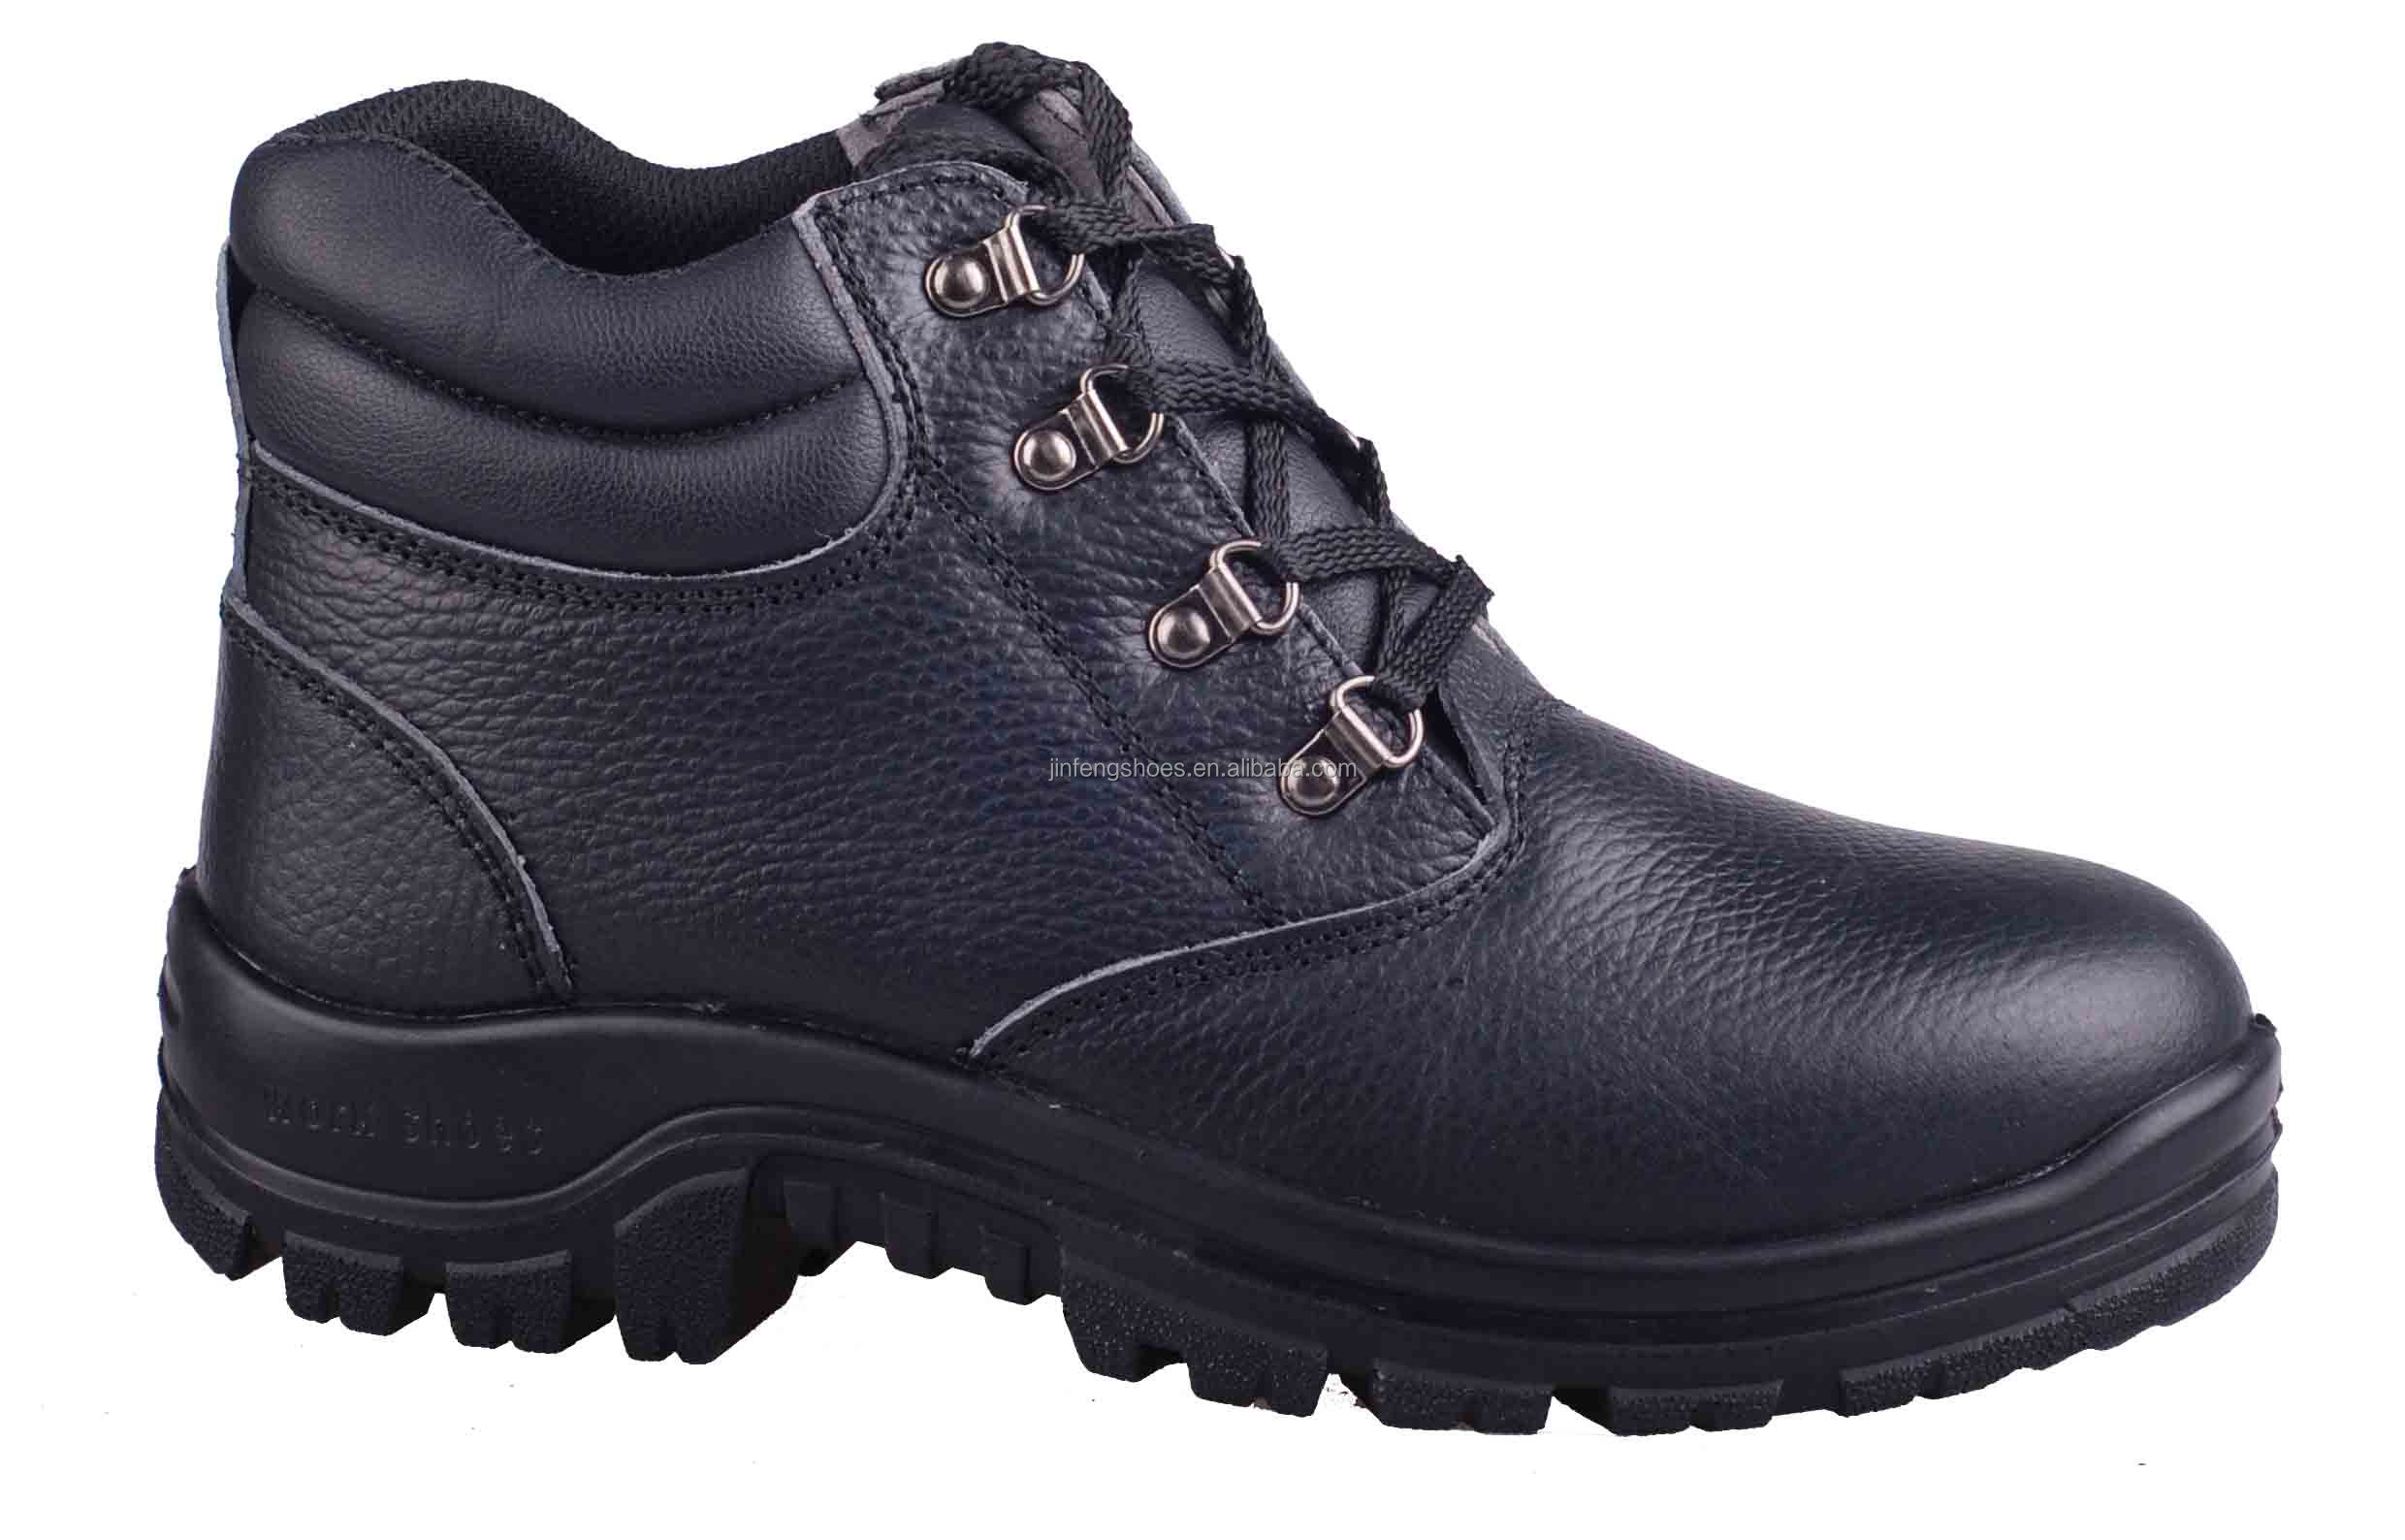 good prices safety shoes brand cheap safety shoes dubai liberty industrial safety  shoes price in india 924e7734f882